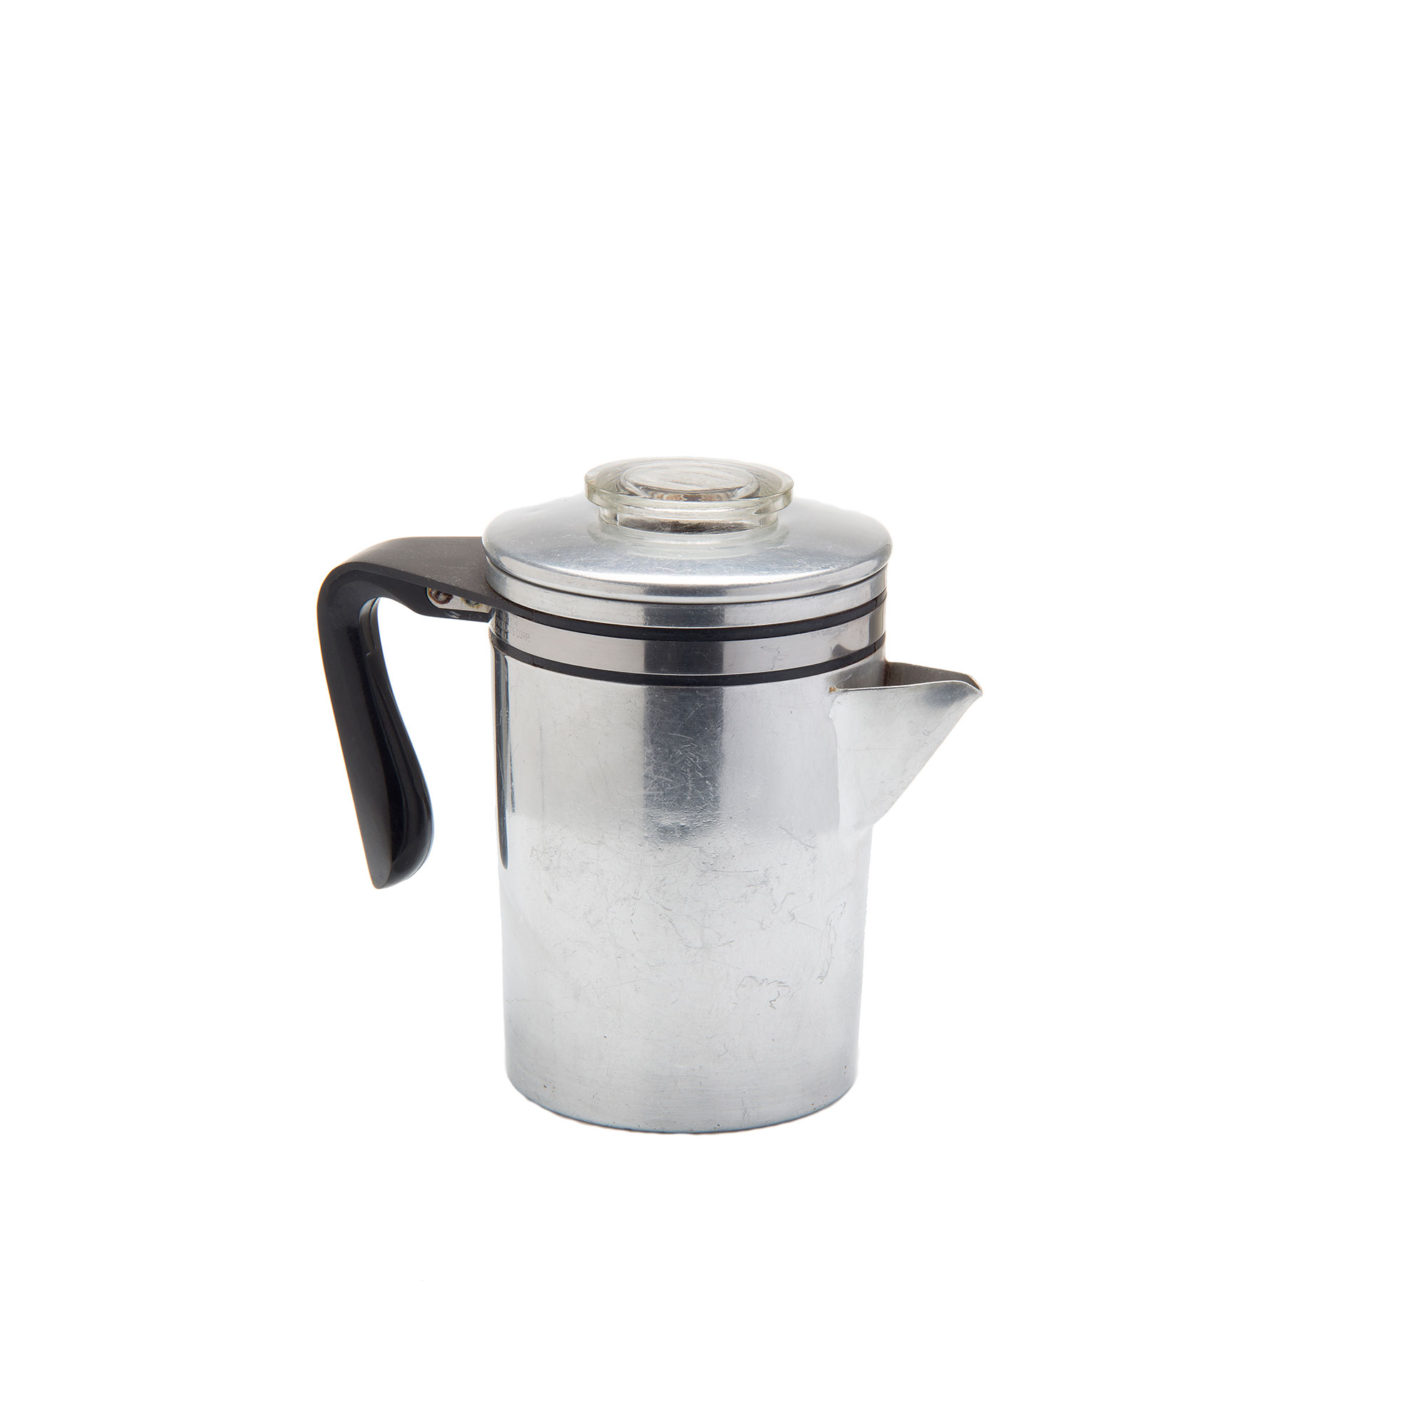 An aluminum coffeemaker. Its basic form is a cylinder with a triangular spout. A large black open handle is connected near the top. The lid has a glass disc on top for viewing the percolating coffee